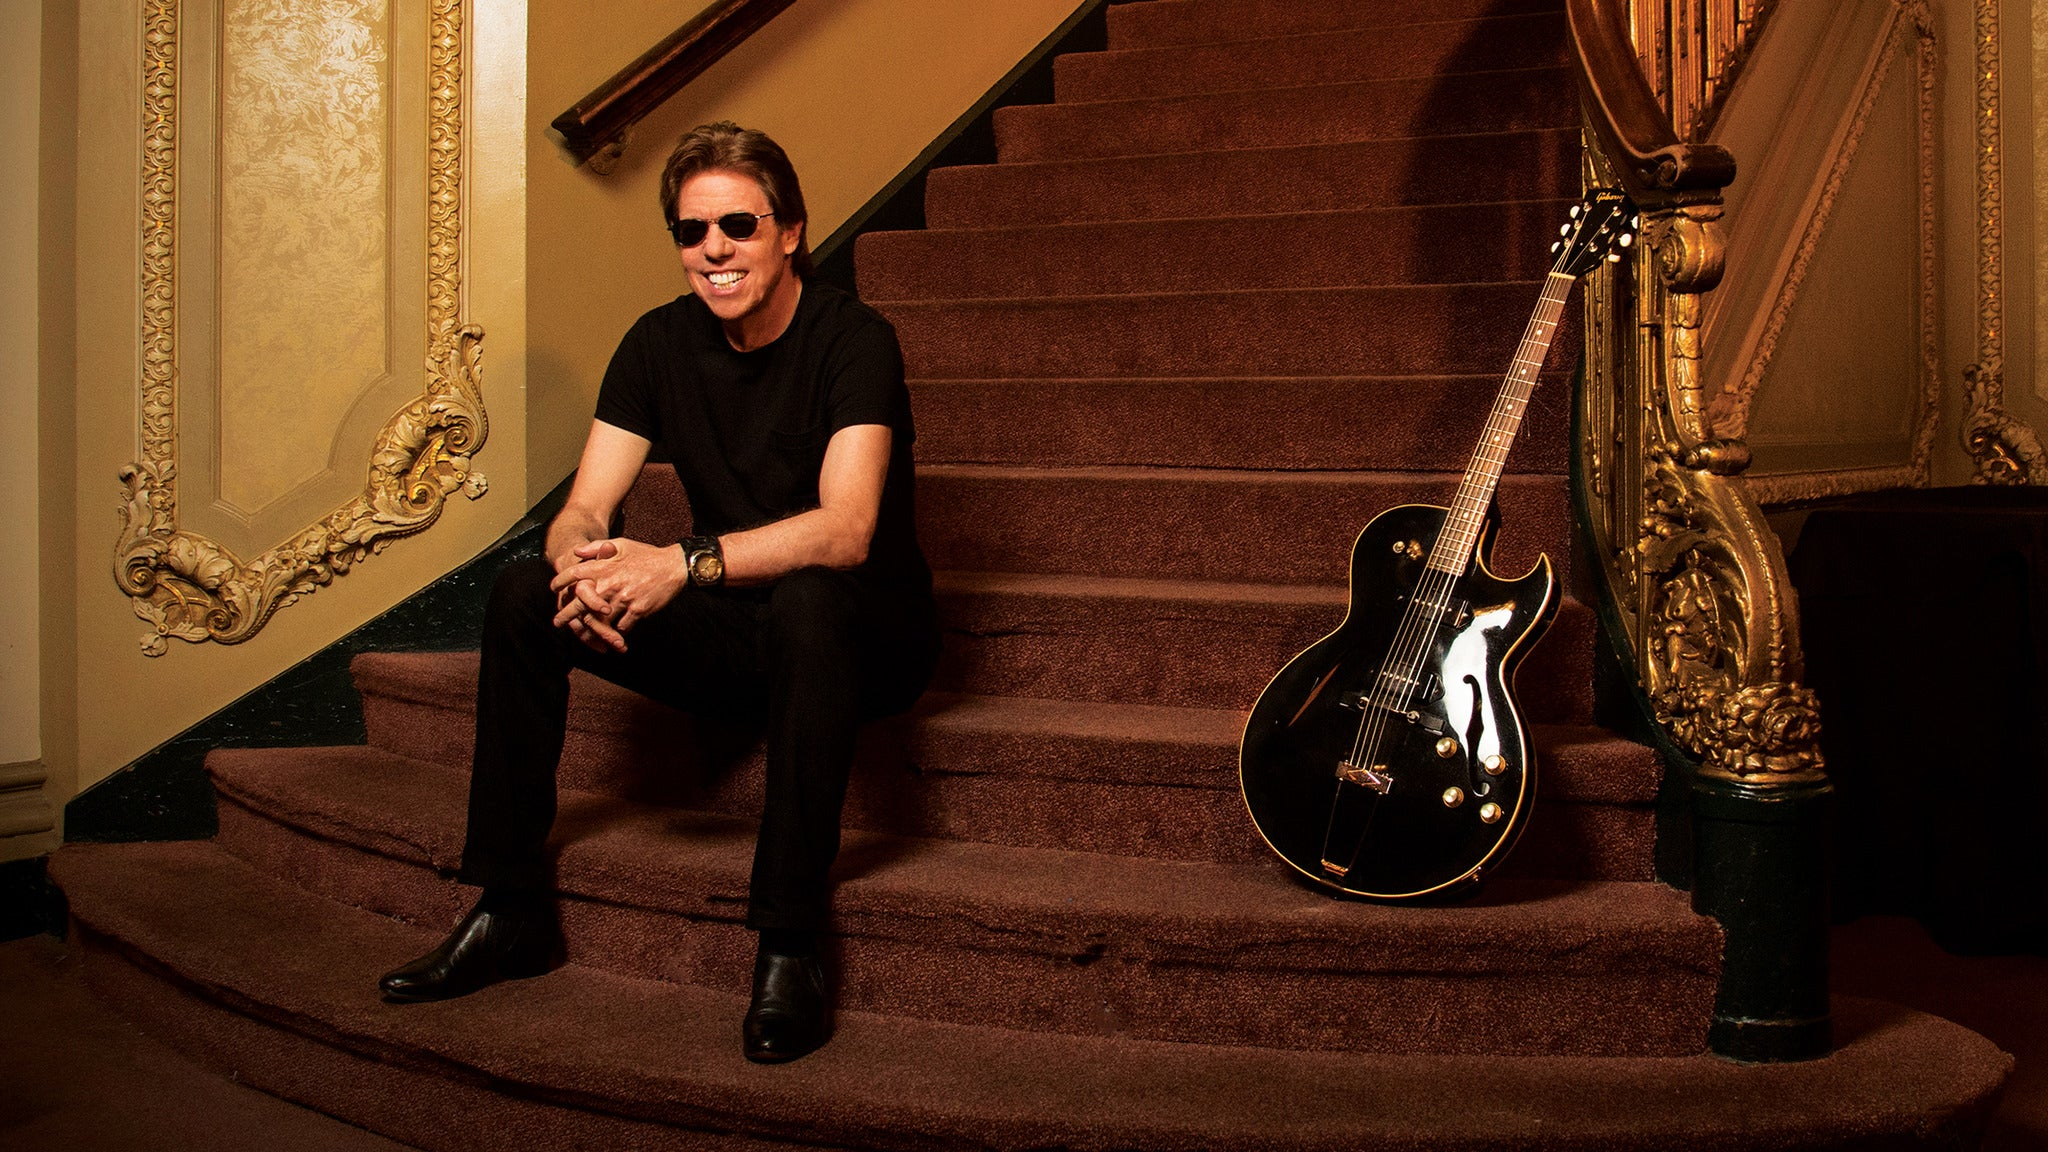 George Thorogood w/ The Destroyers